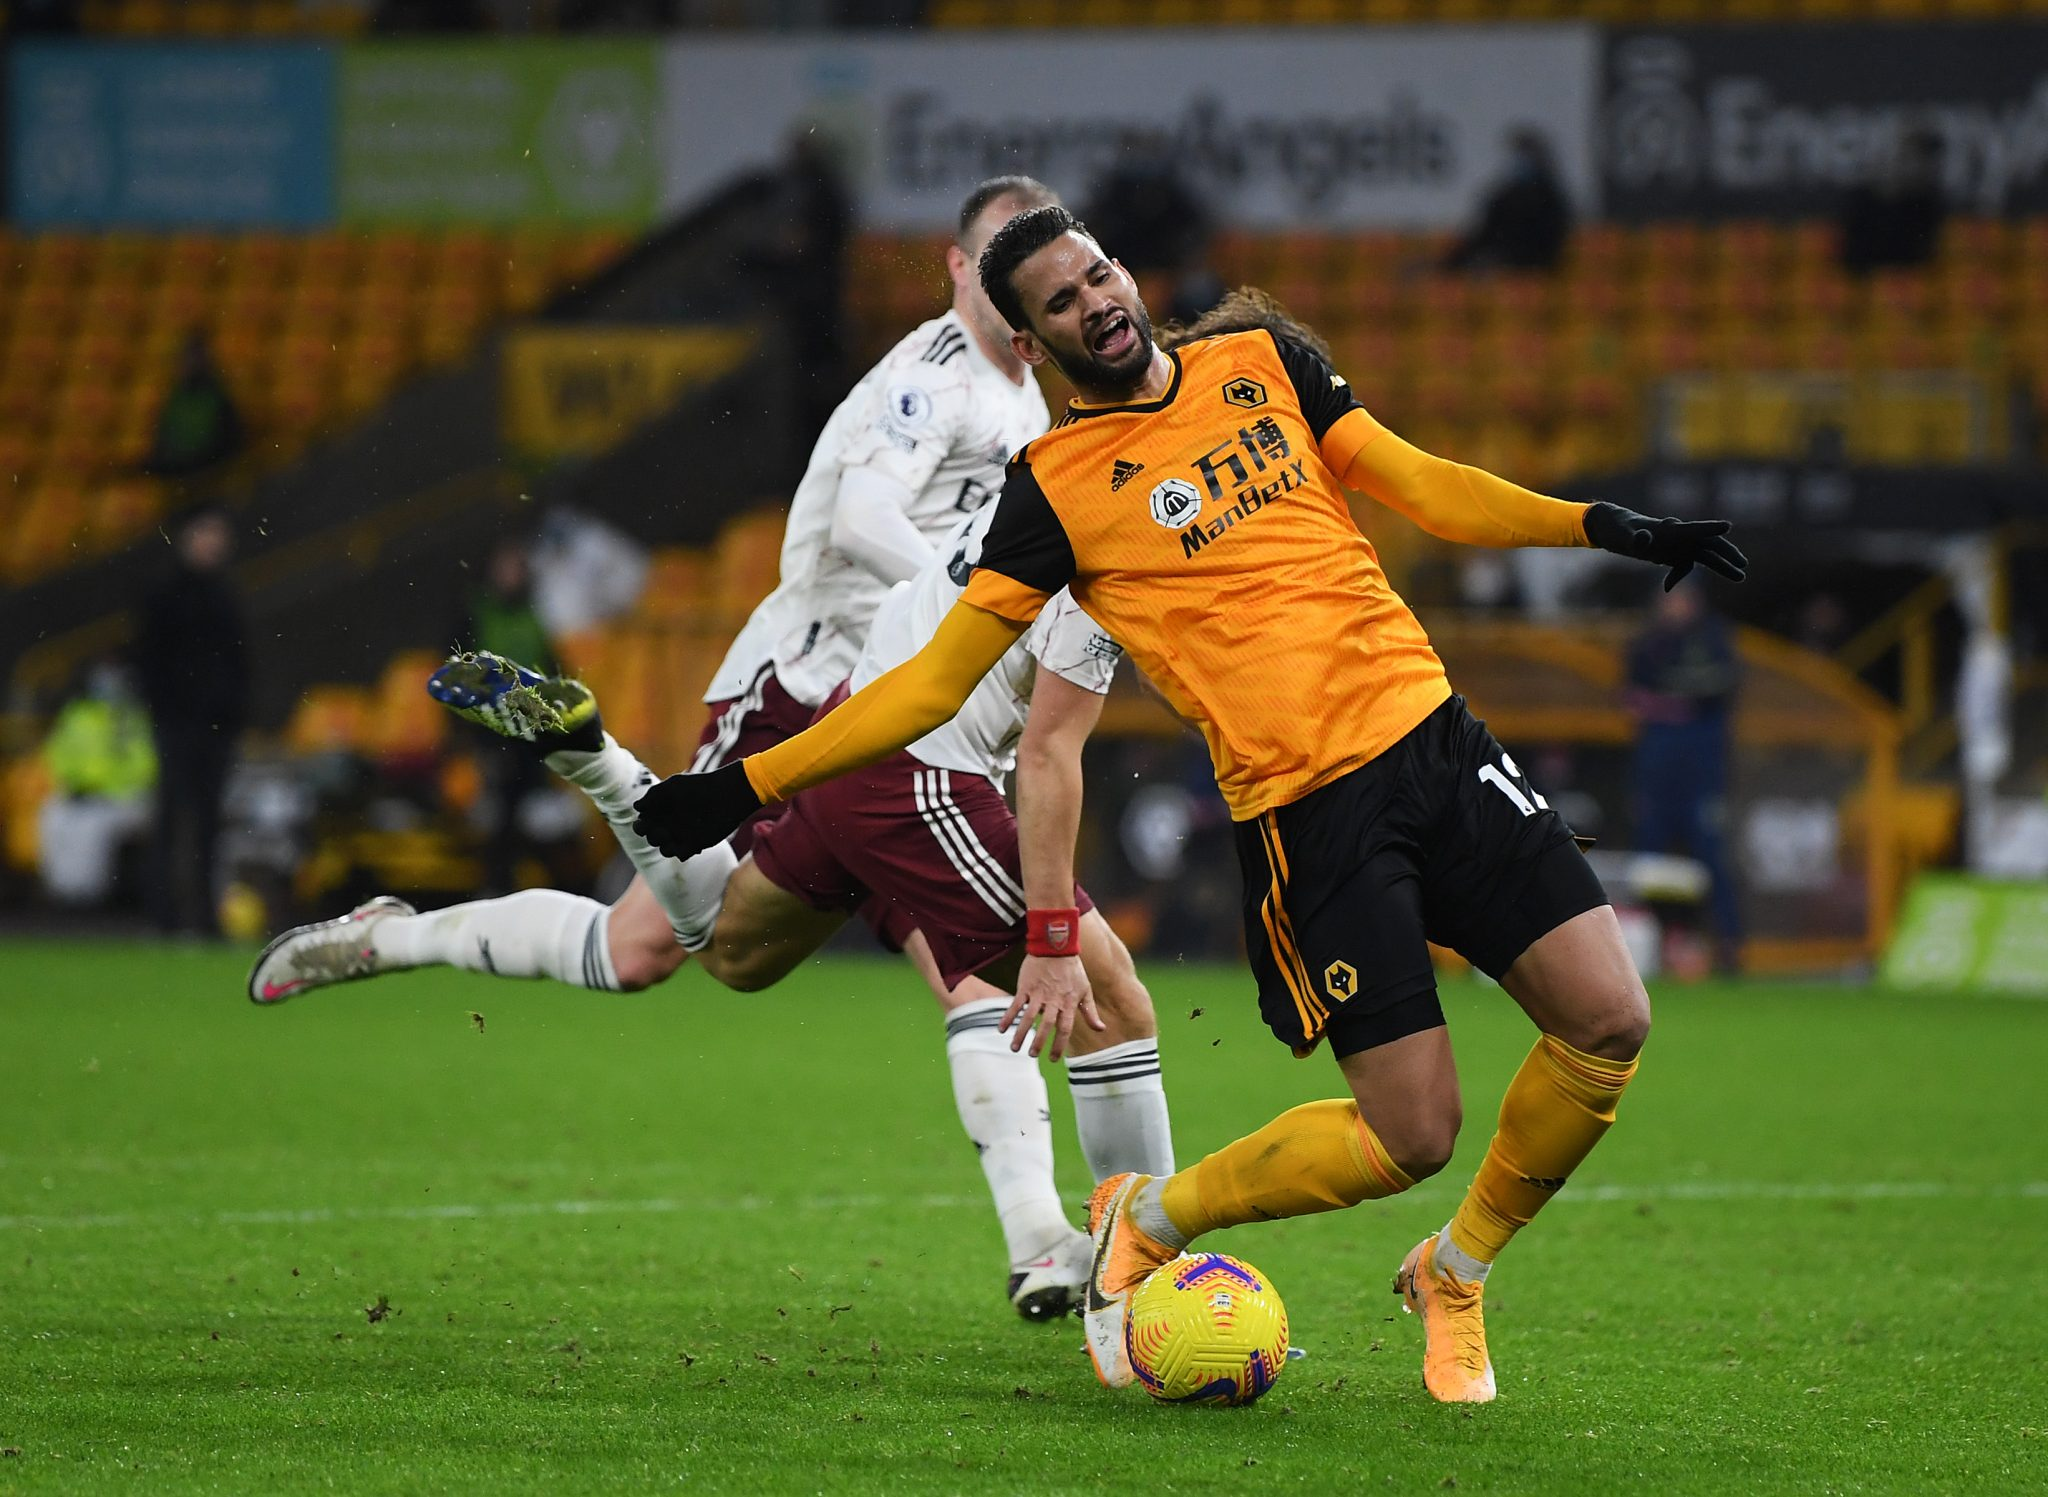 Wolves vs Arsenal: Arteta gives injury updates on Saka, Lacazette, Tierney